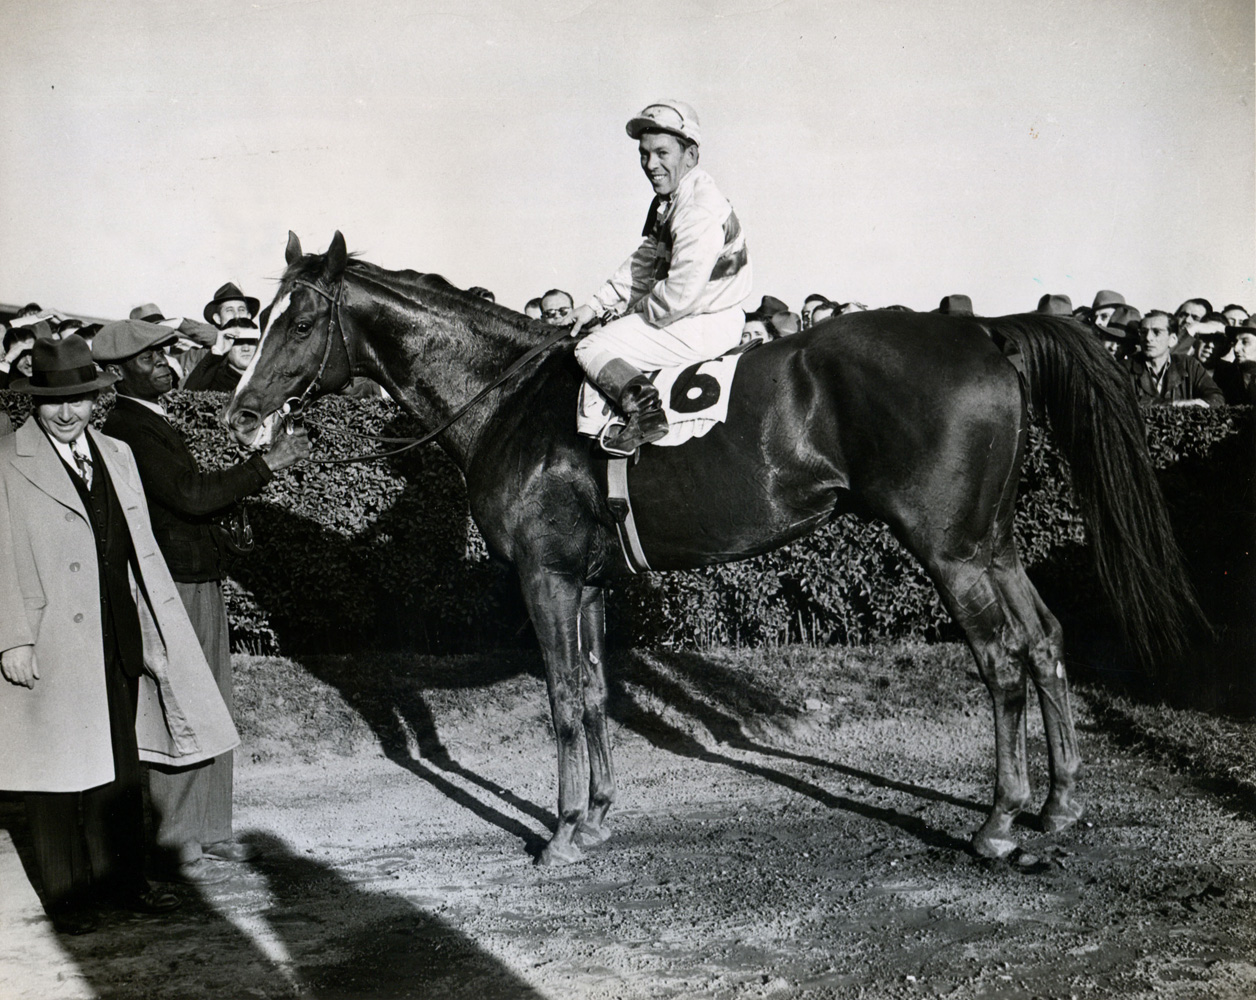 Conn McCreary and Stymie in the winner's circle with trainer Hirsch Jacobs after winning the 1947 Gallant Fox Handicap at Jamaica (Museum Collection)